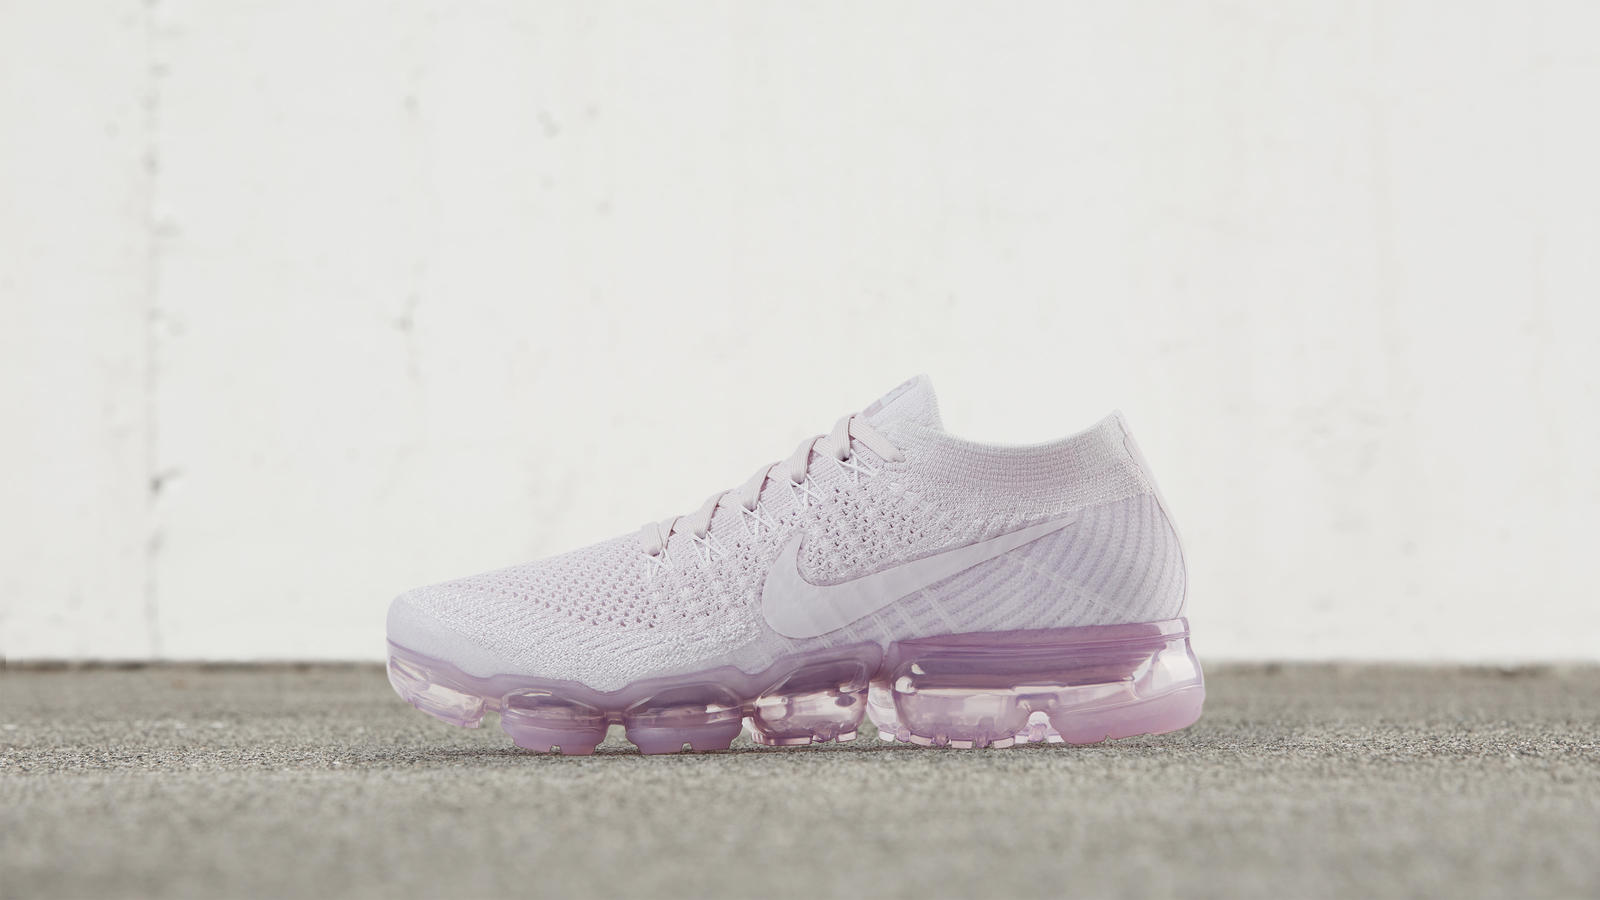 Air vapormax lilac 4 hd 1600